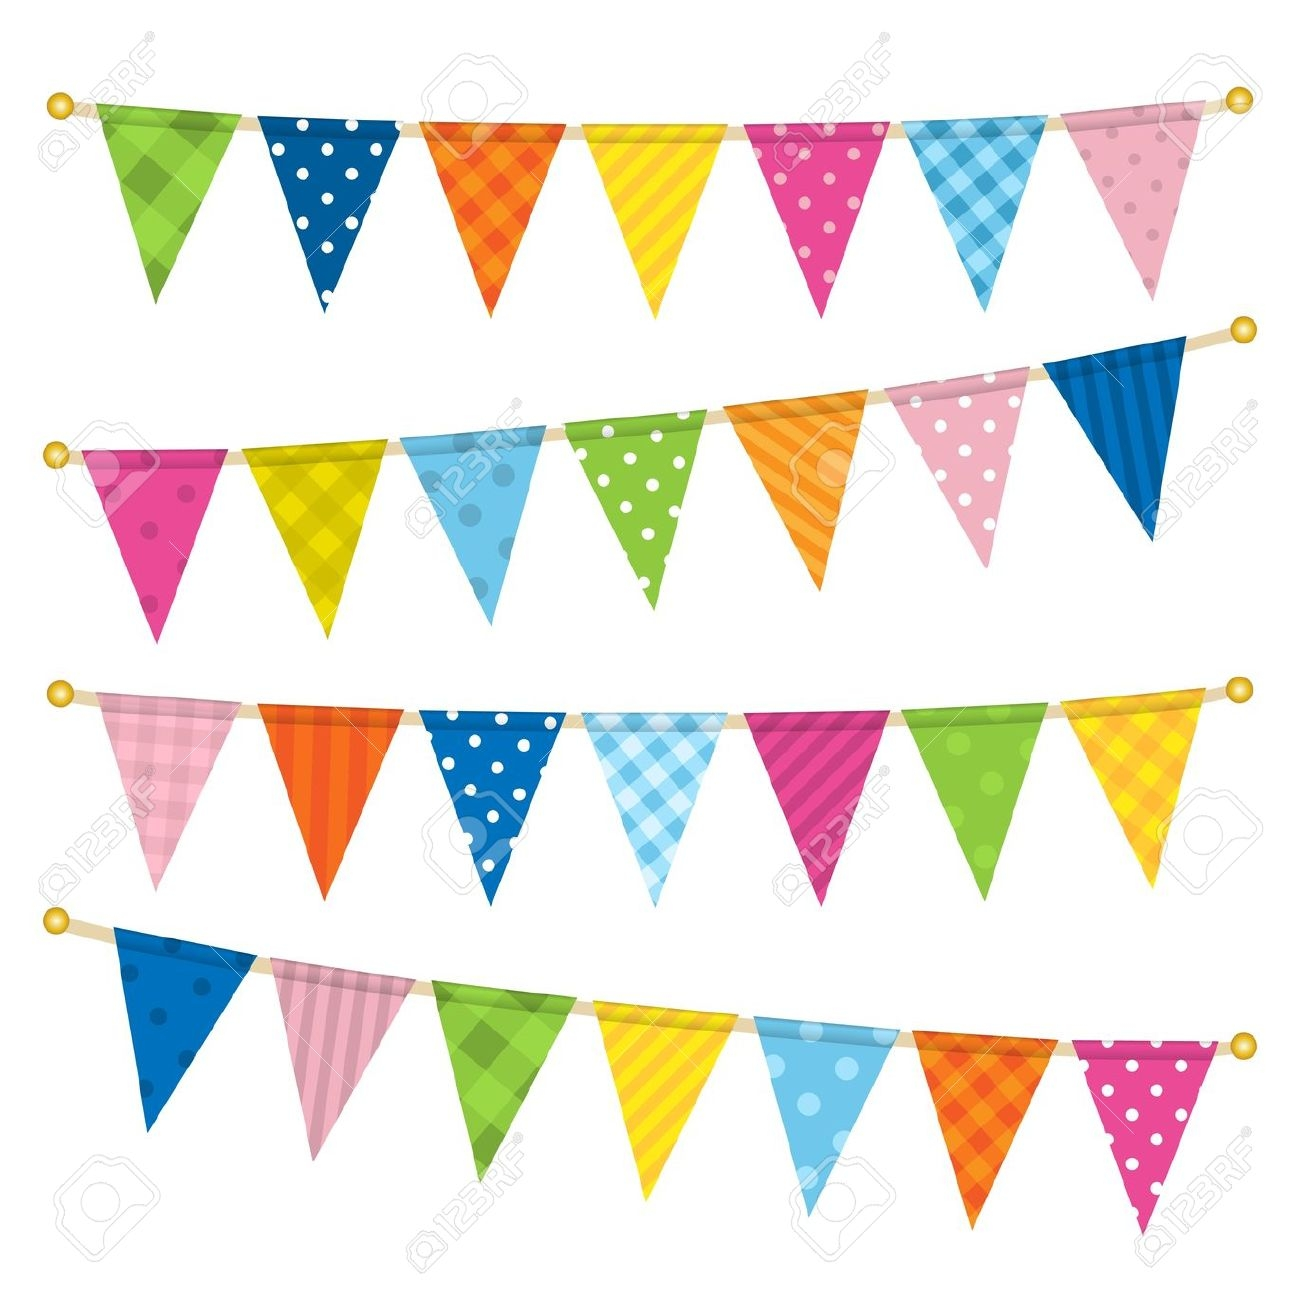 Free flags cliparts download. Triangular clipart festival banner